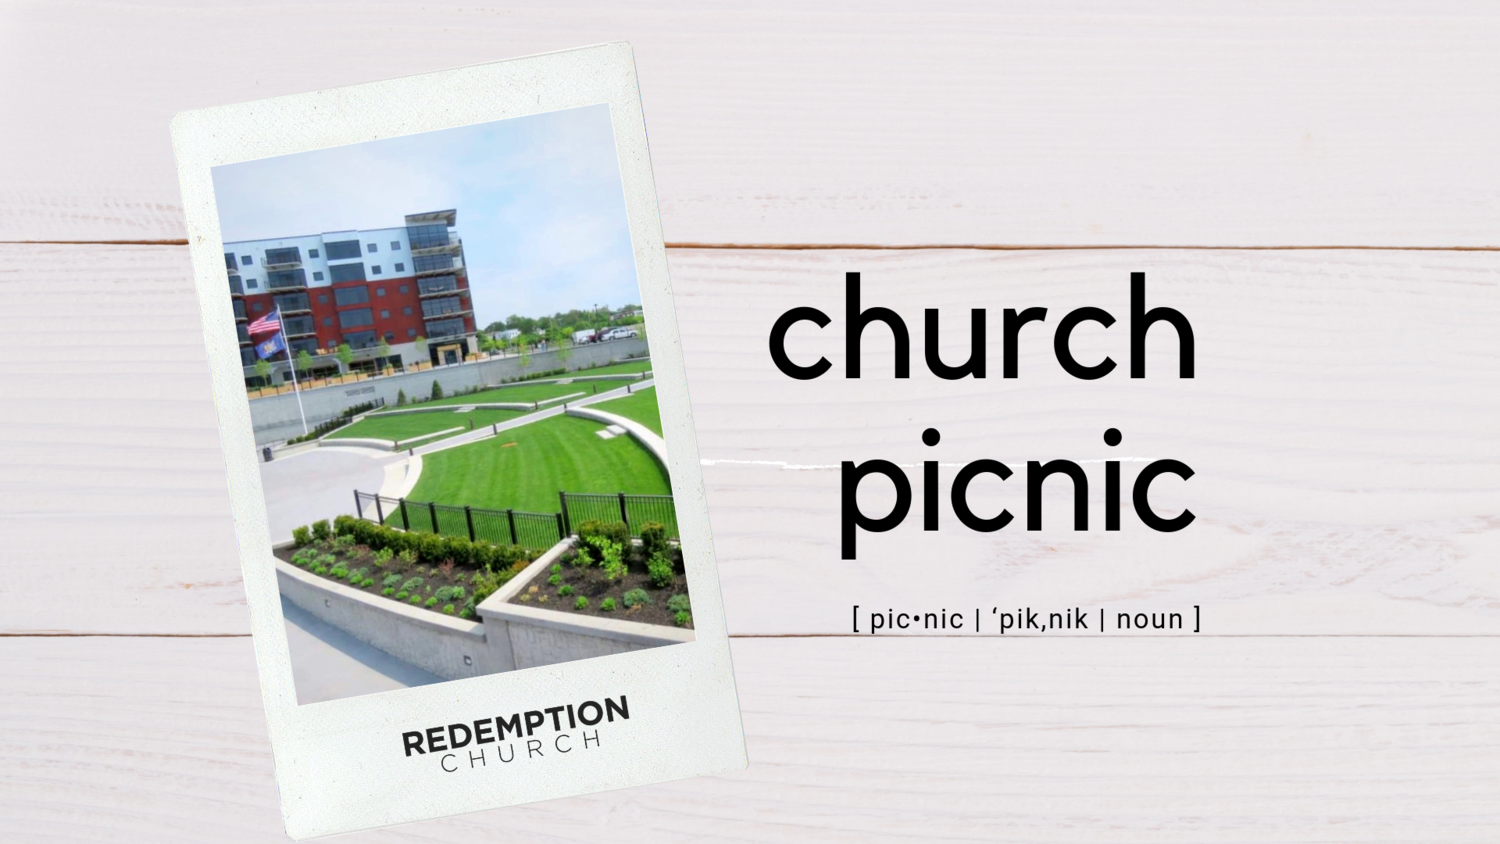 Redemption Church Picnic — REDEMPTION Church